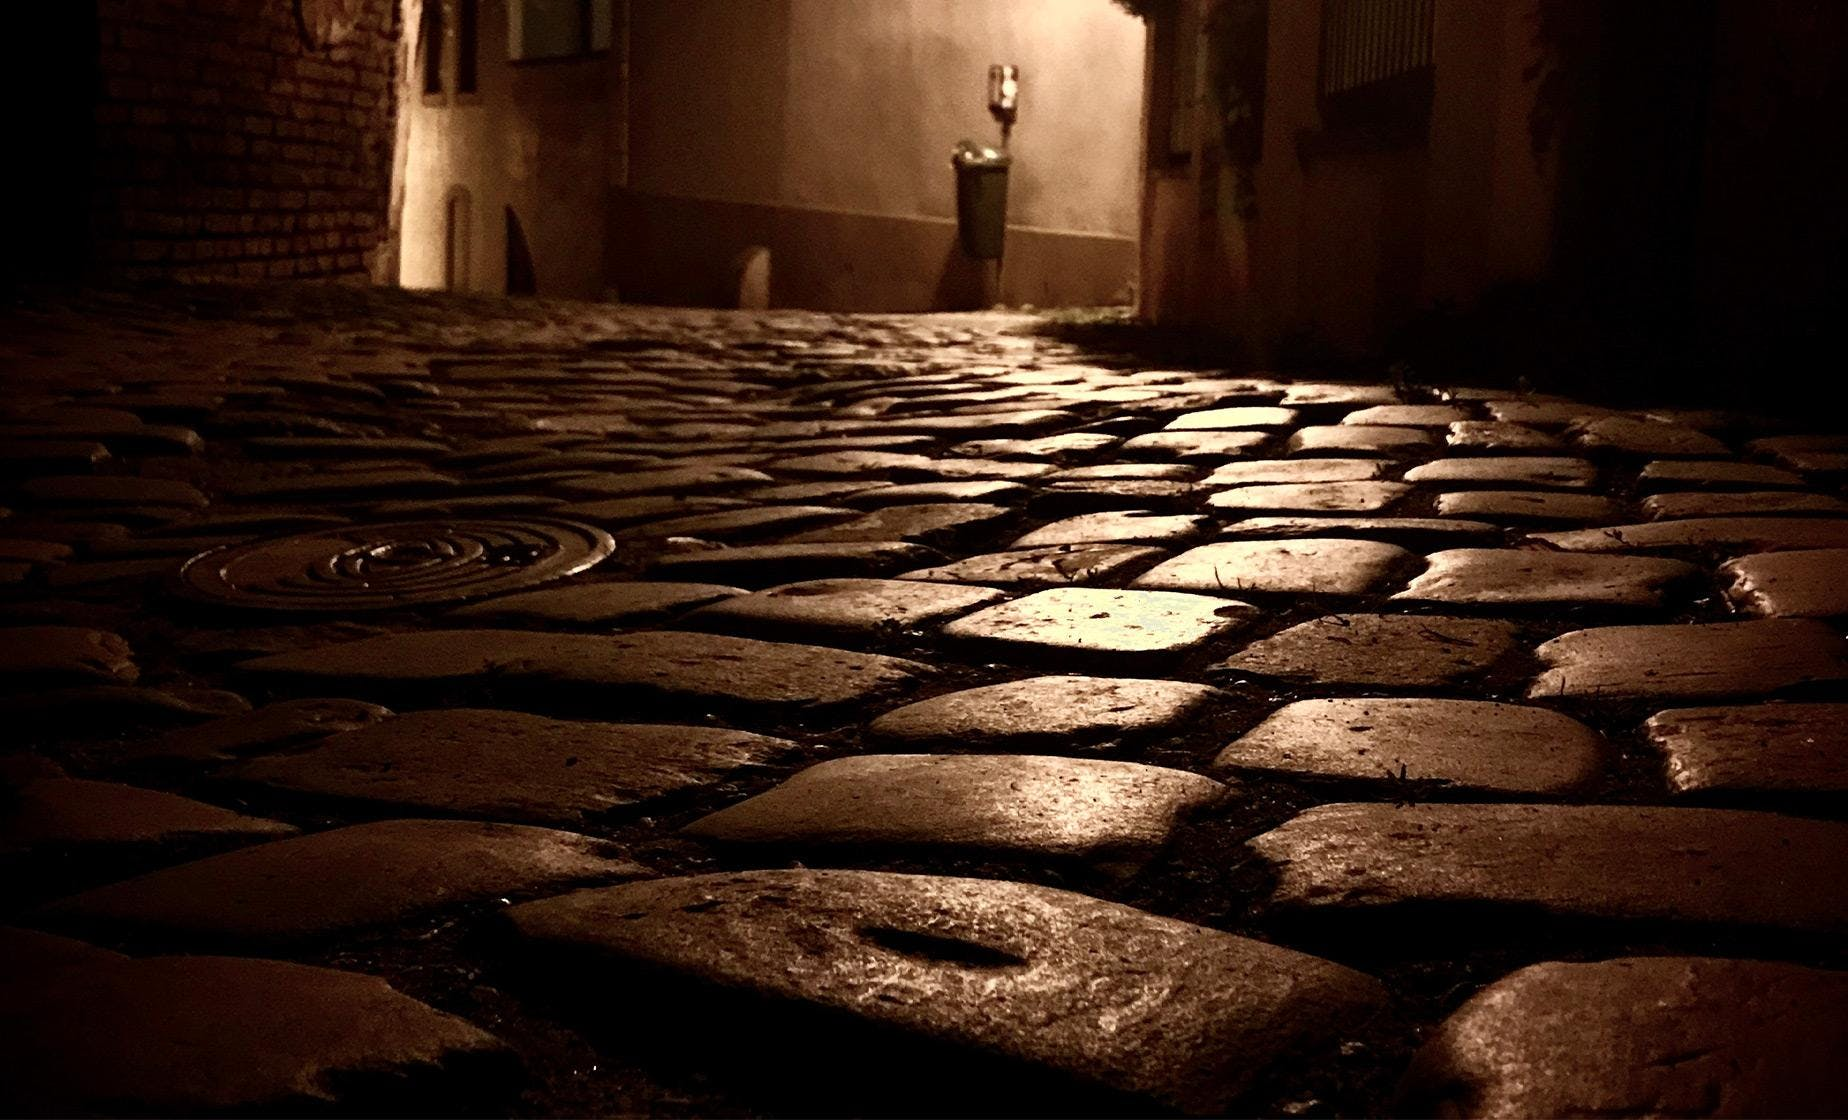 Dark Mysteries of the Old Town